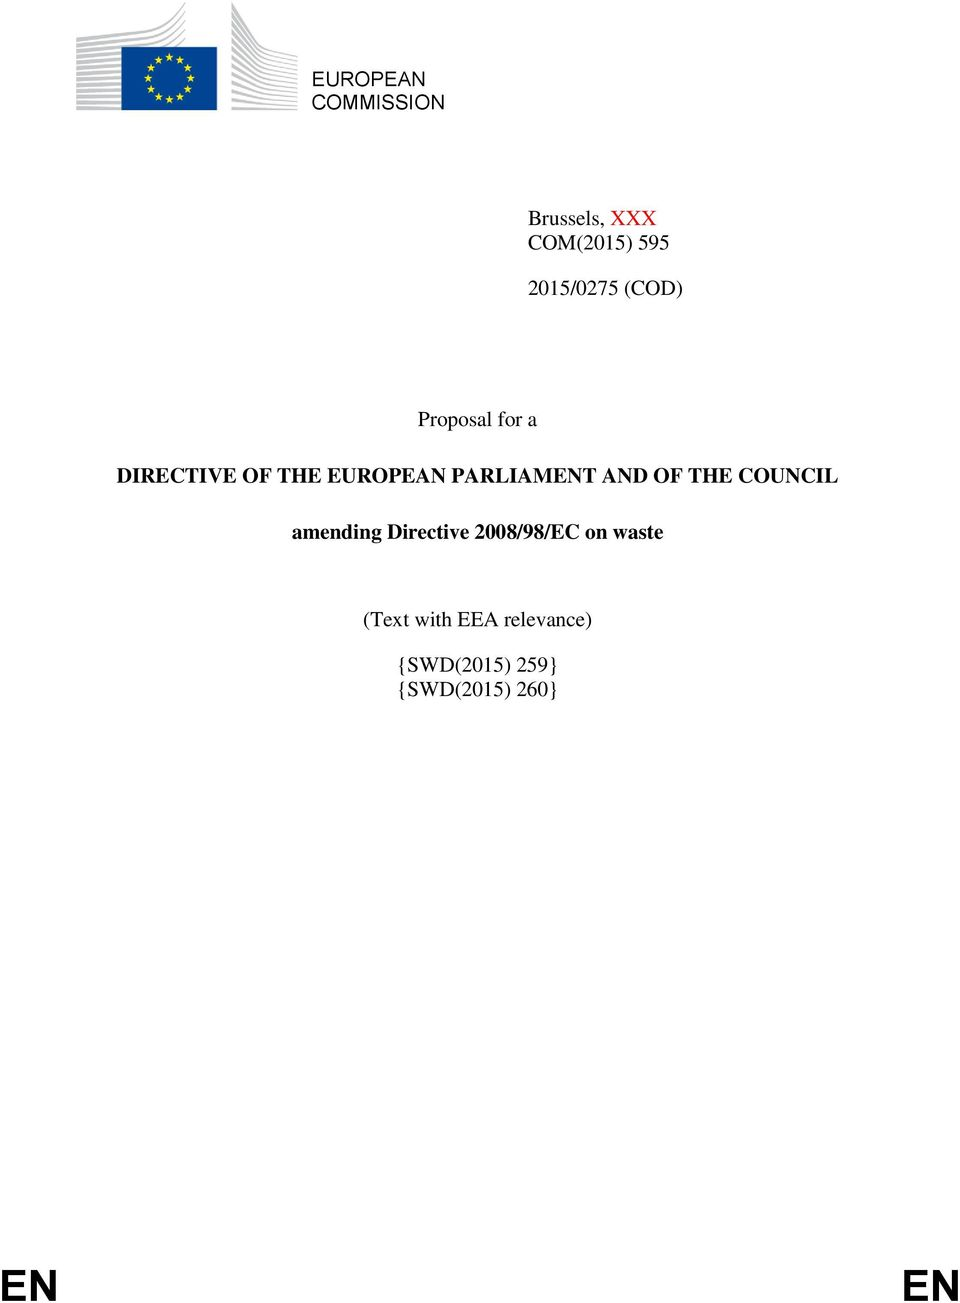 AND OF THE COUNCIL amending Directive 2008/98/EC on waste